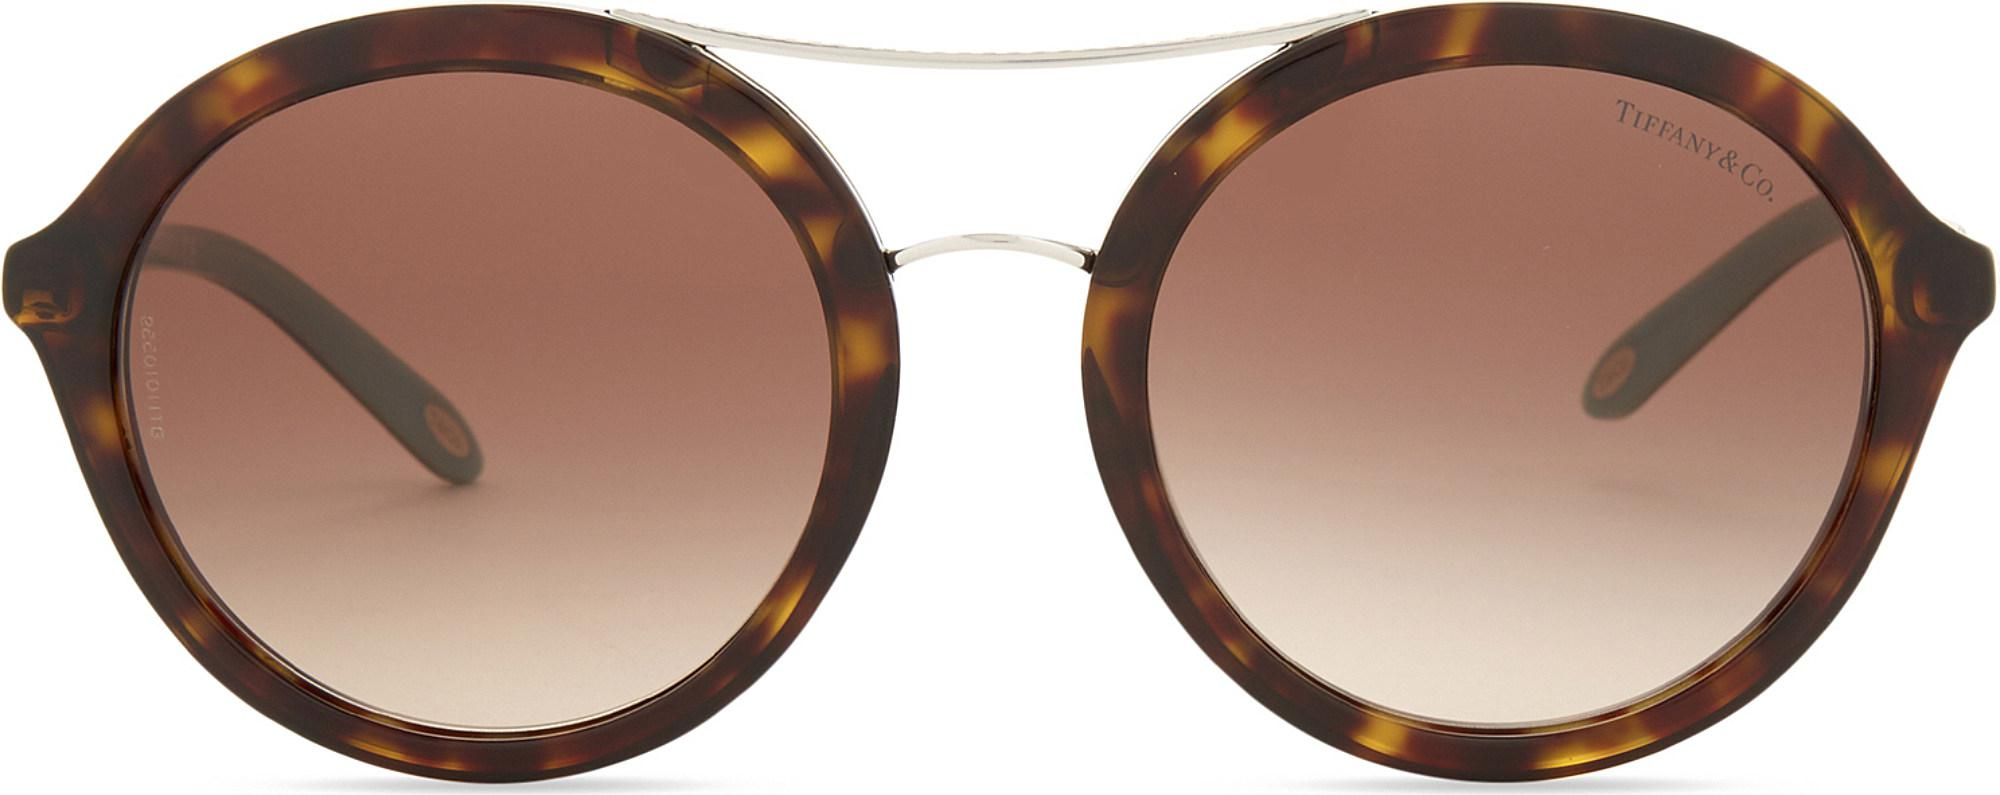 402bd06706f Tiffany   Co. Tf4136 Round-frame Sunglasses in Brown - Lyst